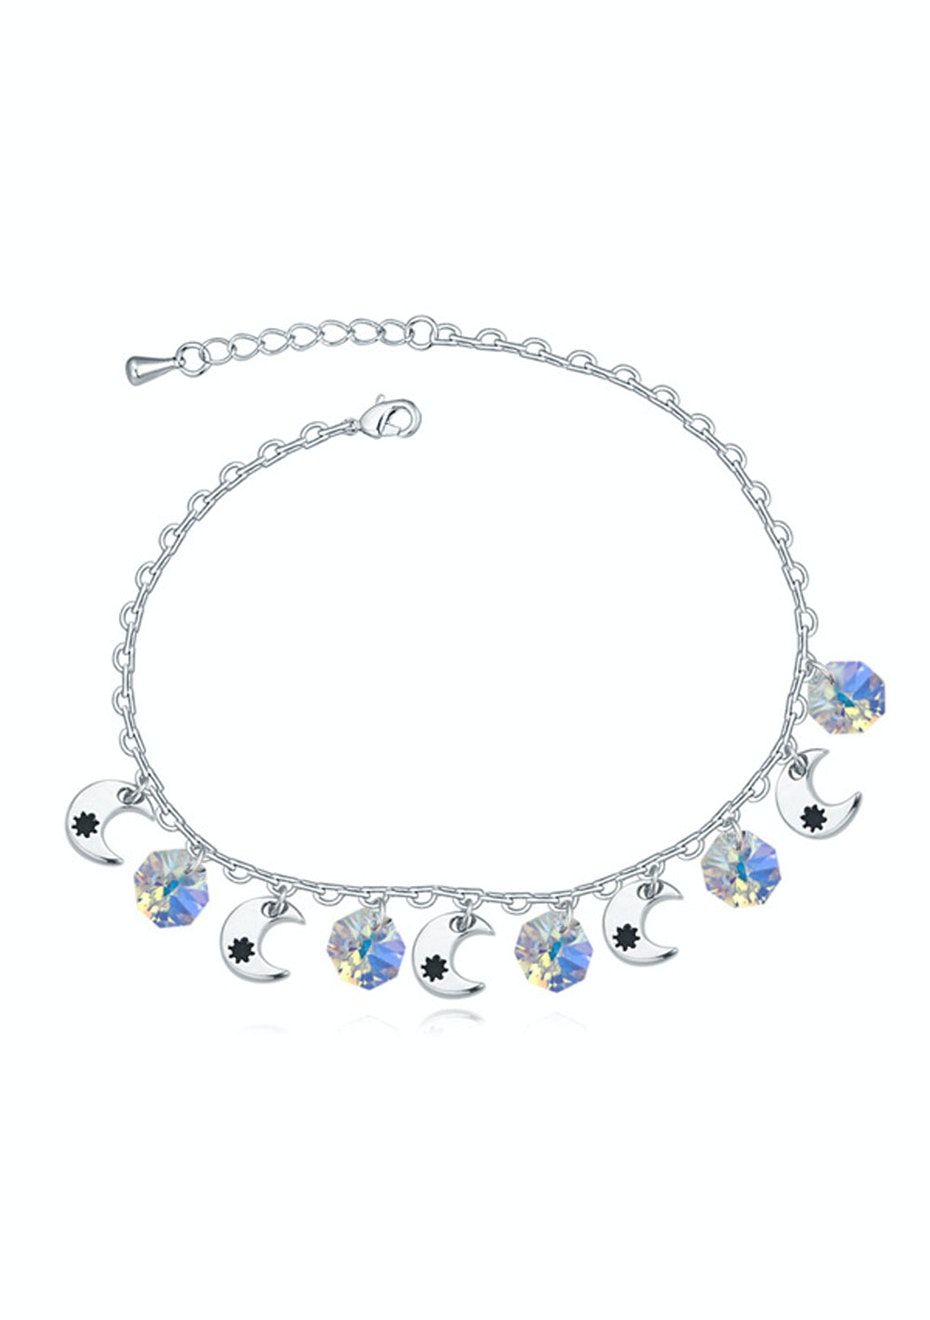 Moon Anklet Embellished with Crystals from Swarovski -WG